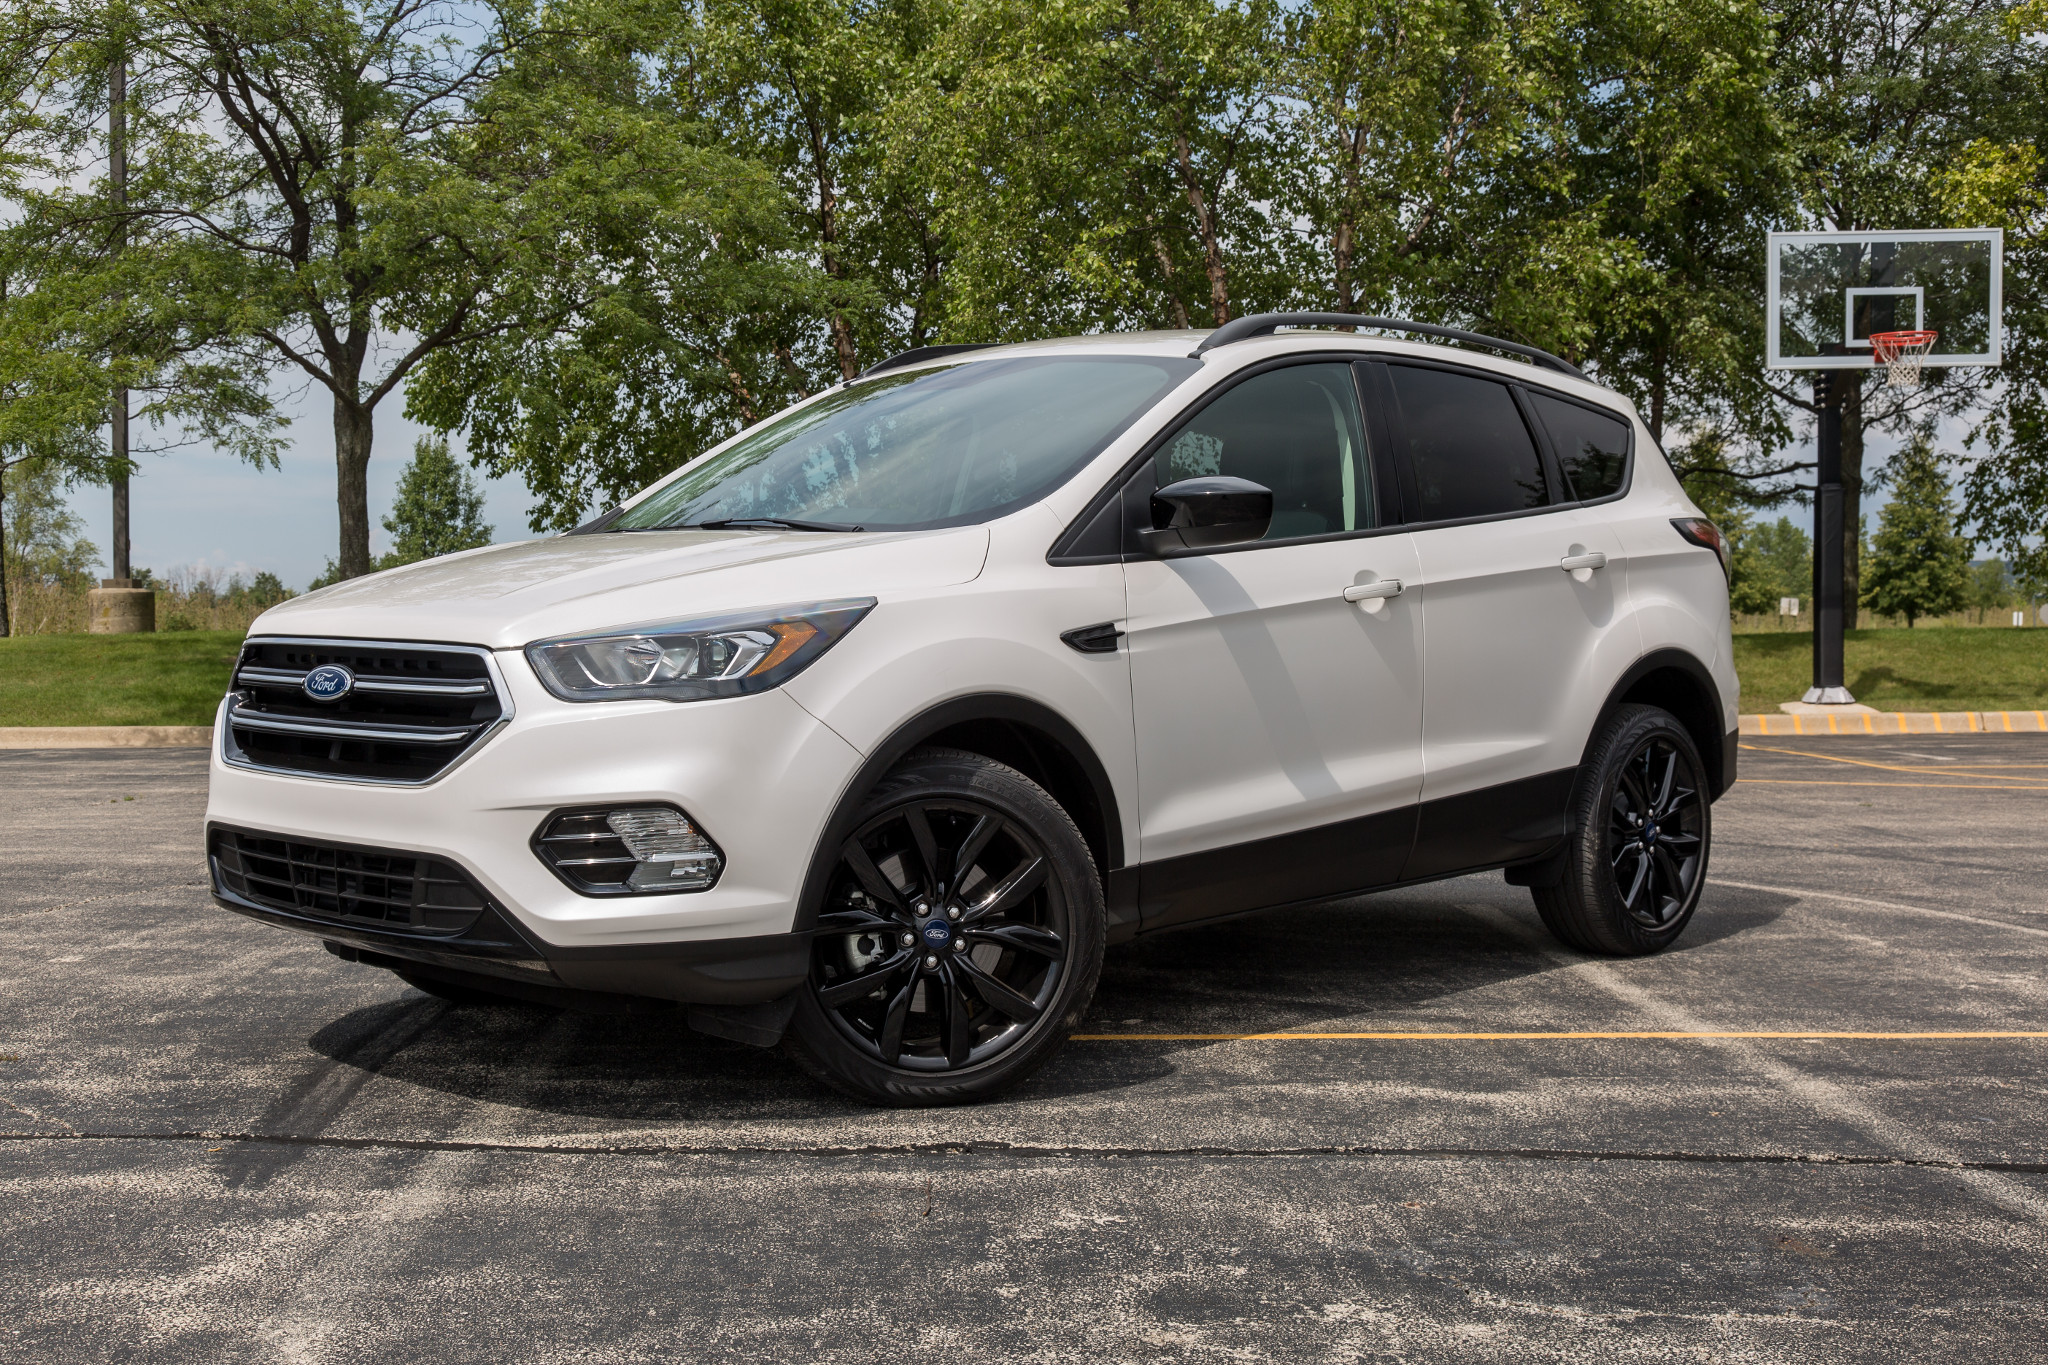 ford-escape-2017-01-angle-dynamic-exterior-front-rear-white.jpg